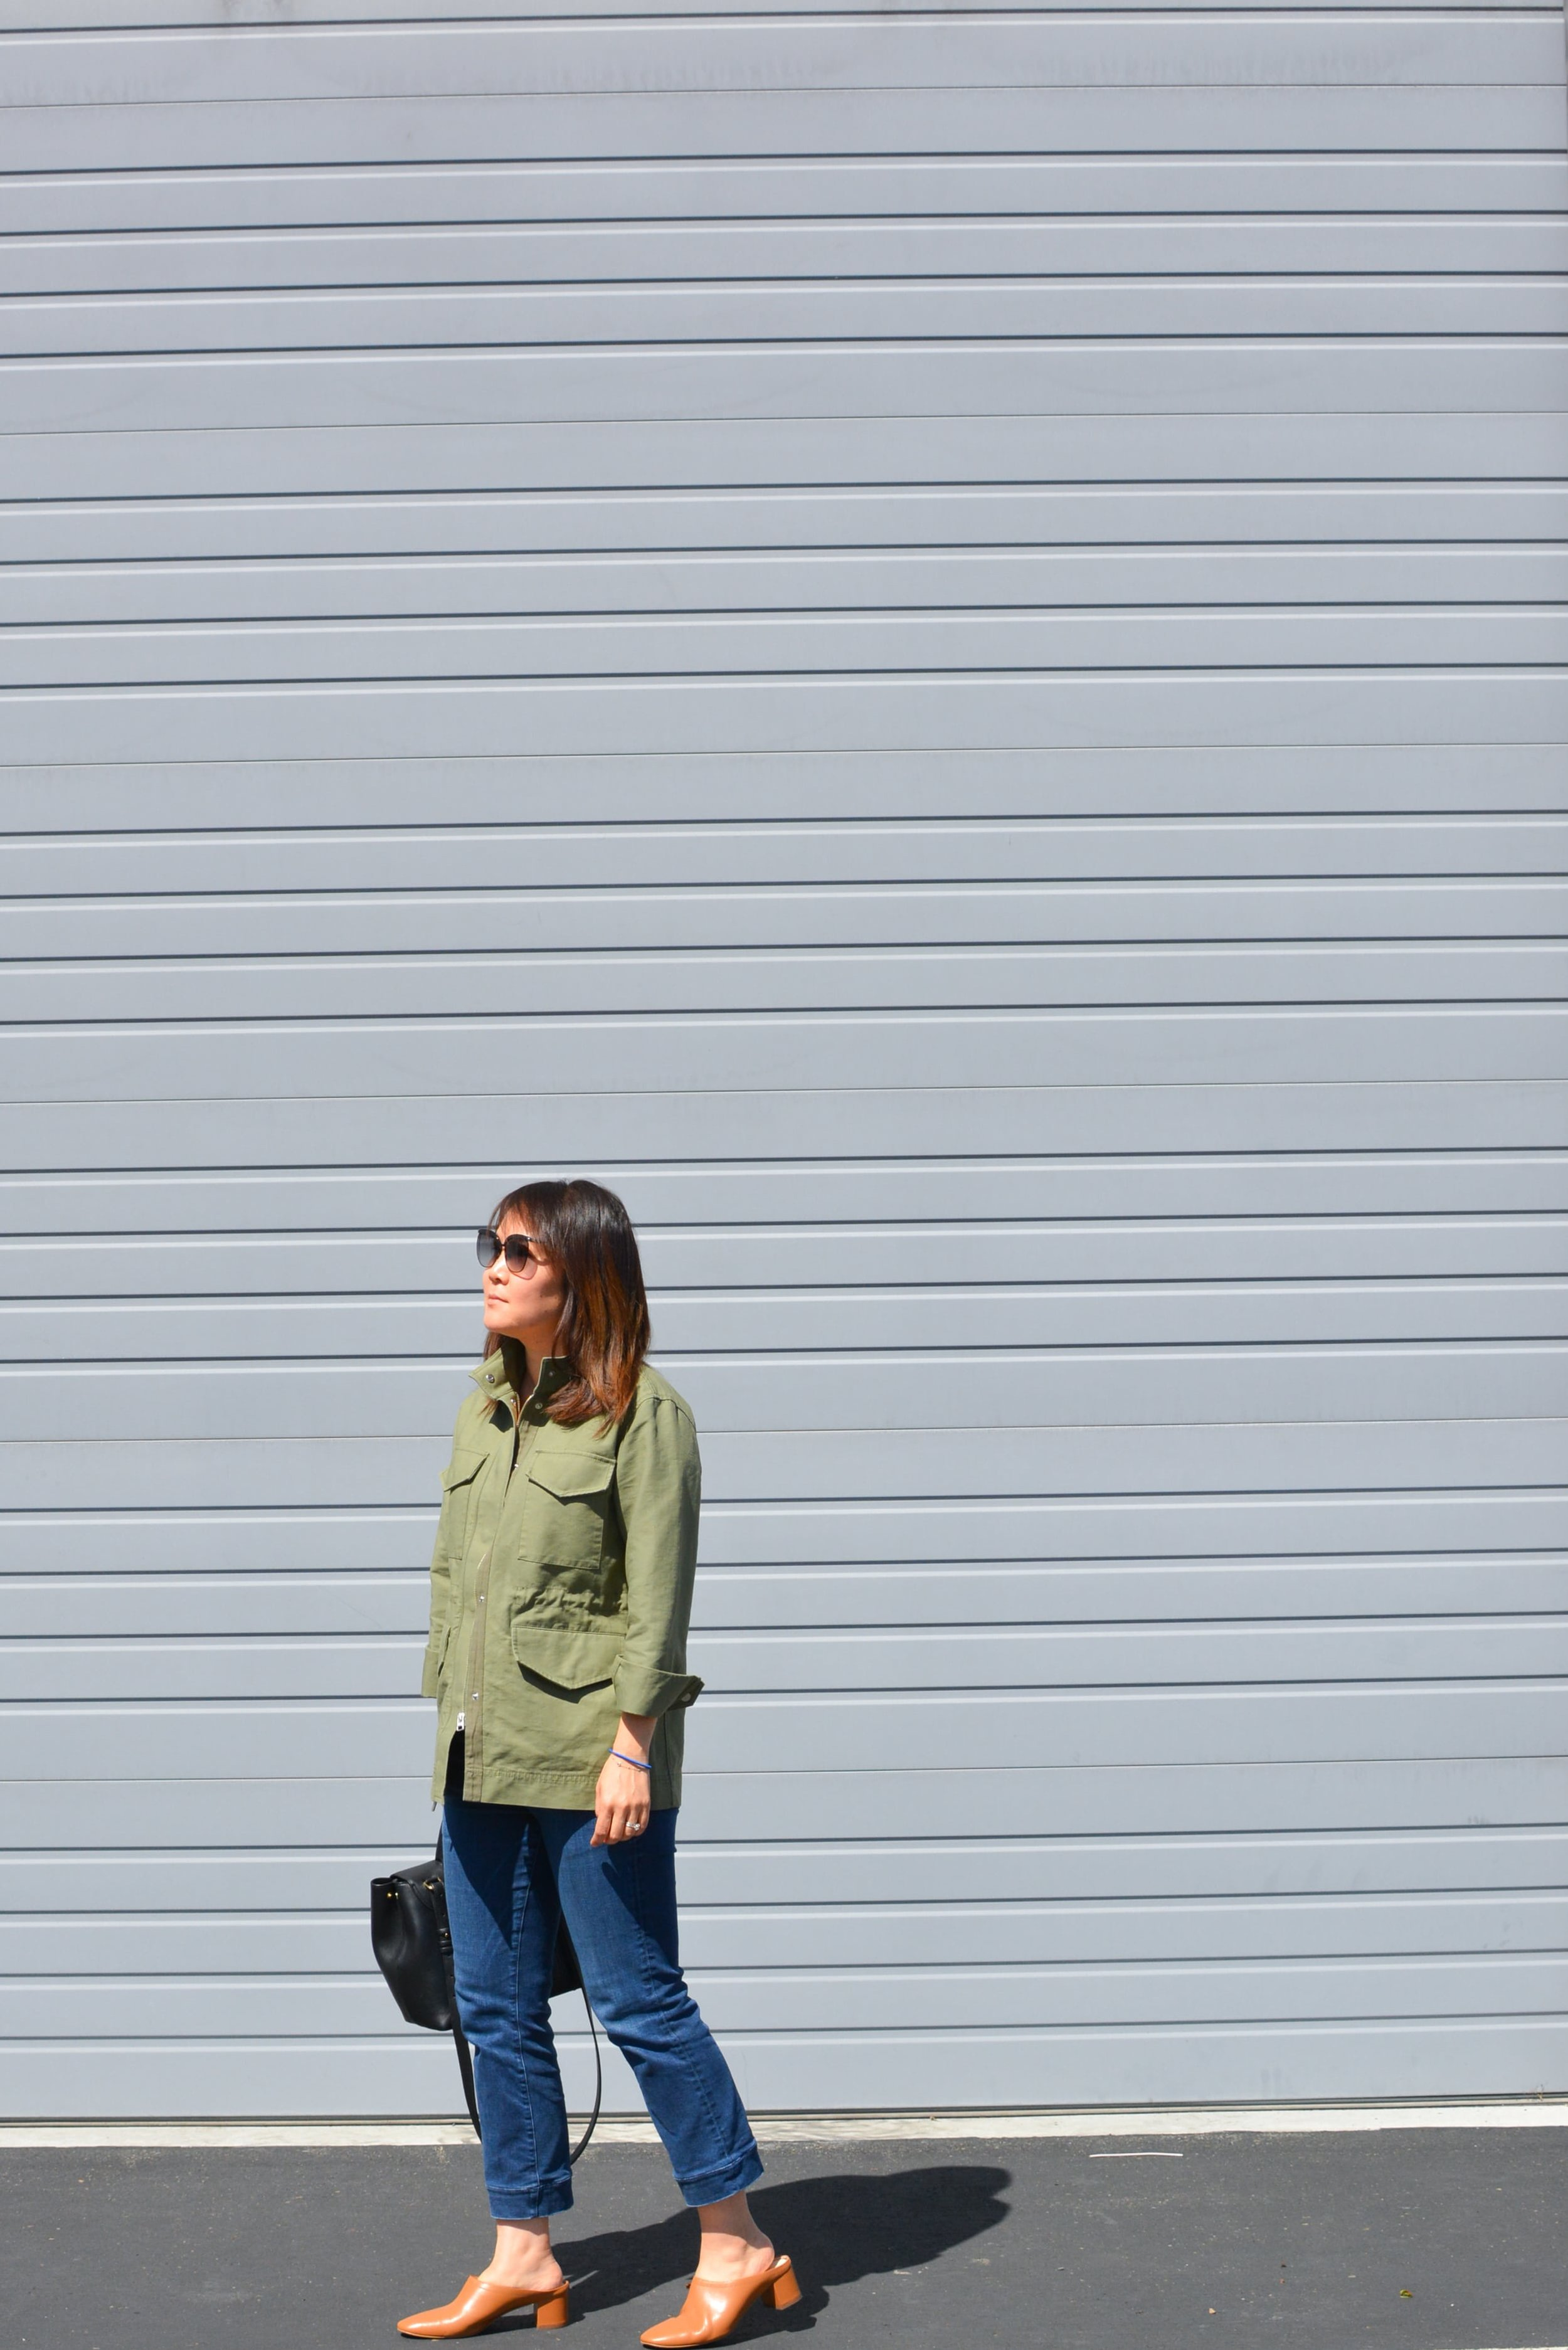 Everlane Review The Modern Utility Jacket (2 of 3)-min.jpg